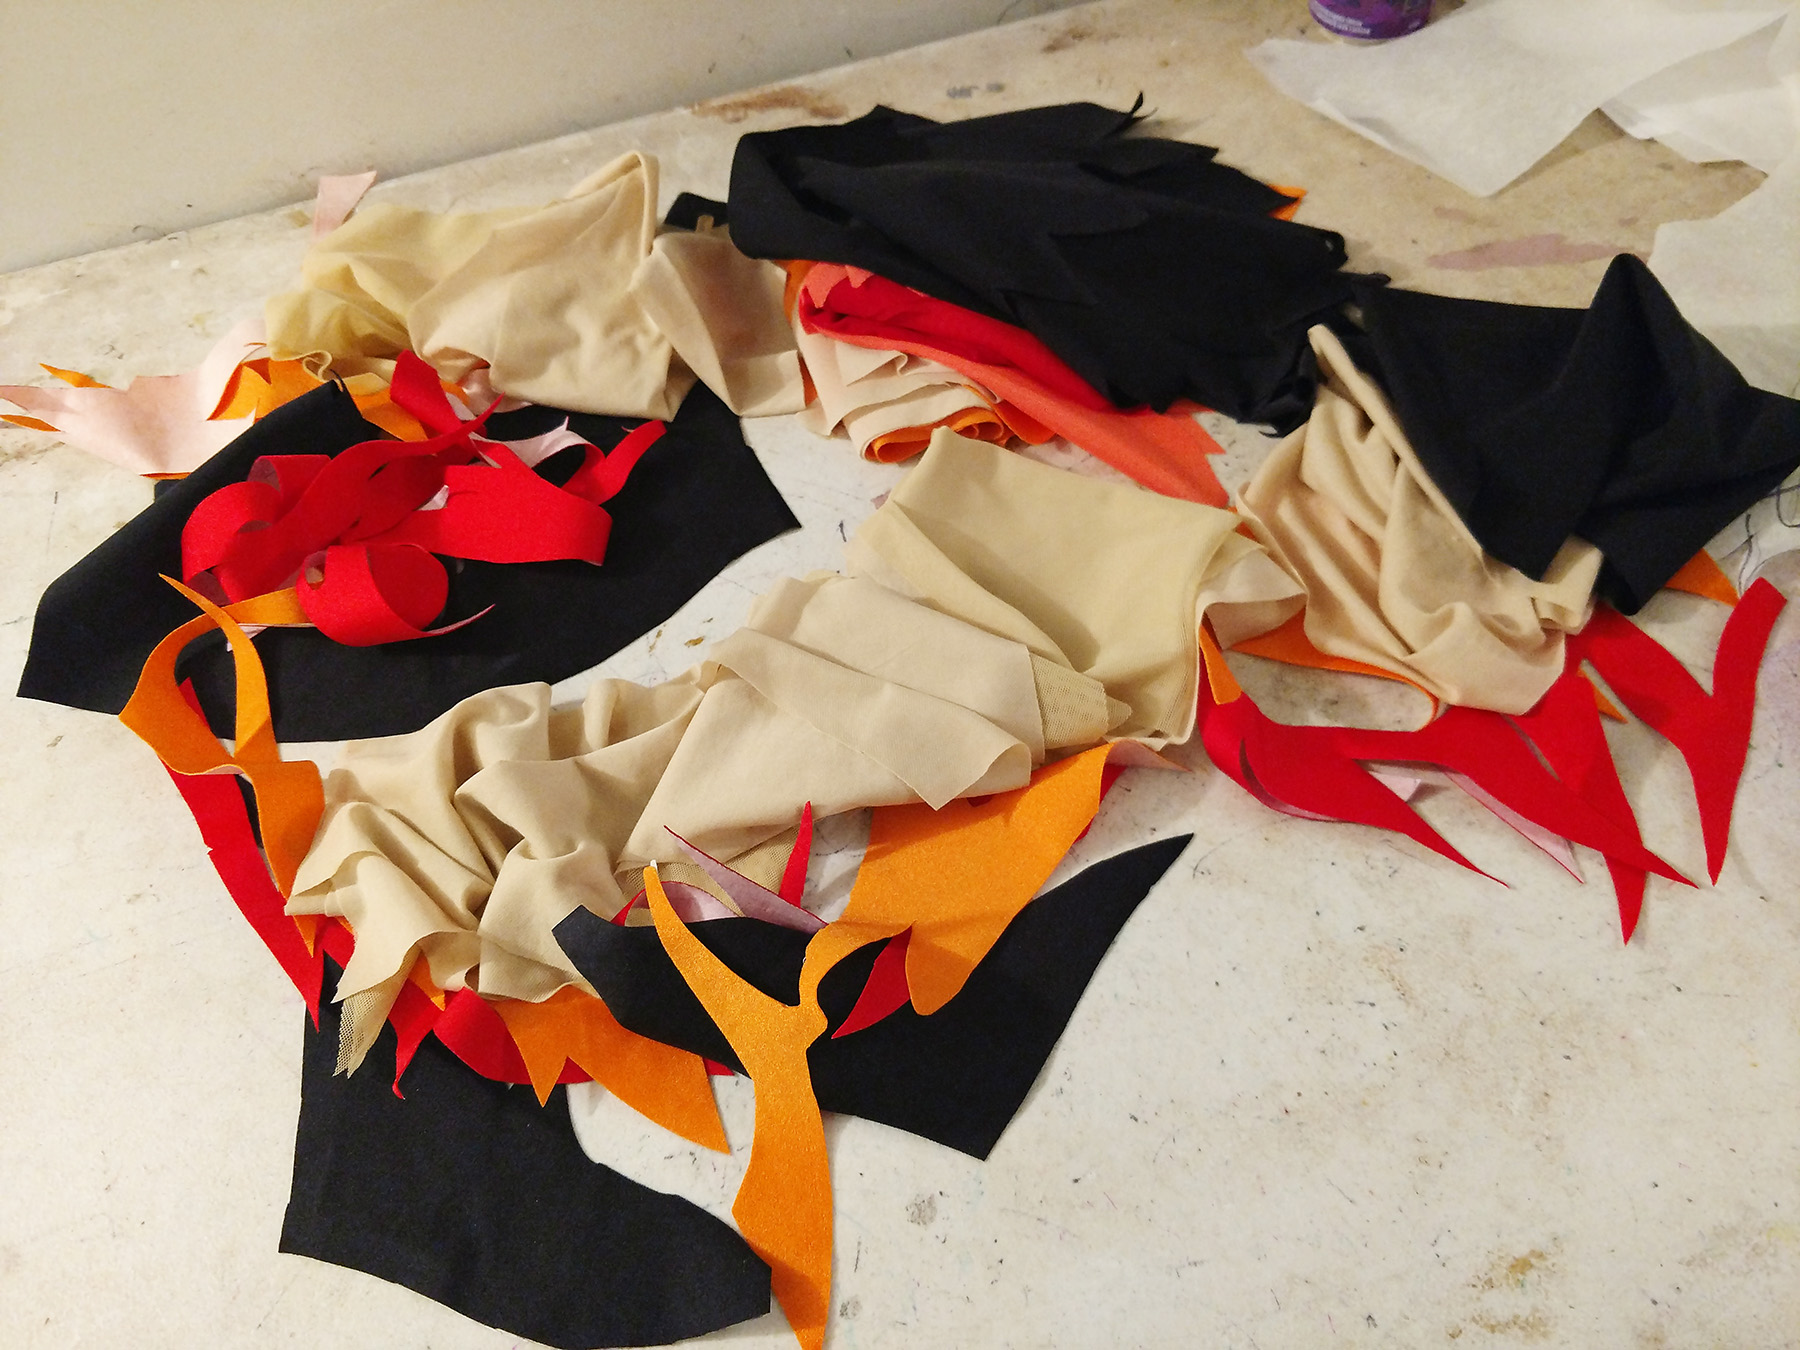 Piles of cut pieces of fabric - beige lining and mesh, red, black, and orange spandex, red and orange mesh.